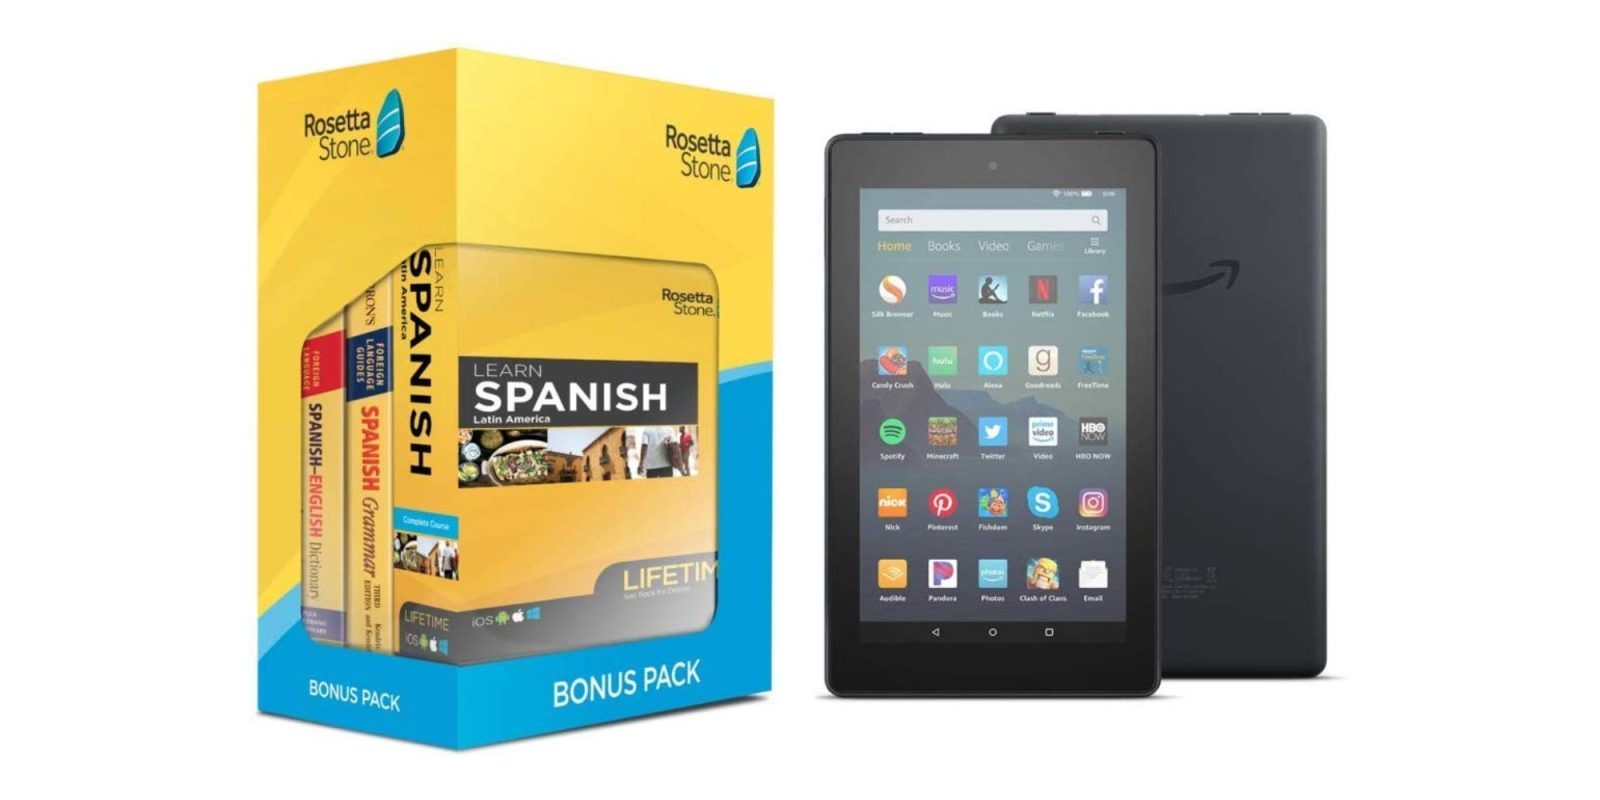 Learn Spanish, German, more with Rosetta Stone's Fire 7 bundle: $150 ($90 off)